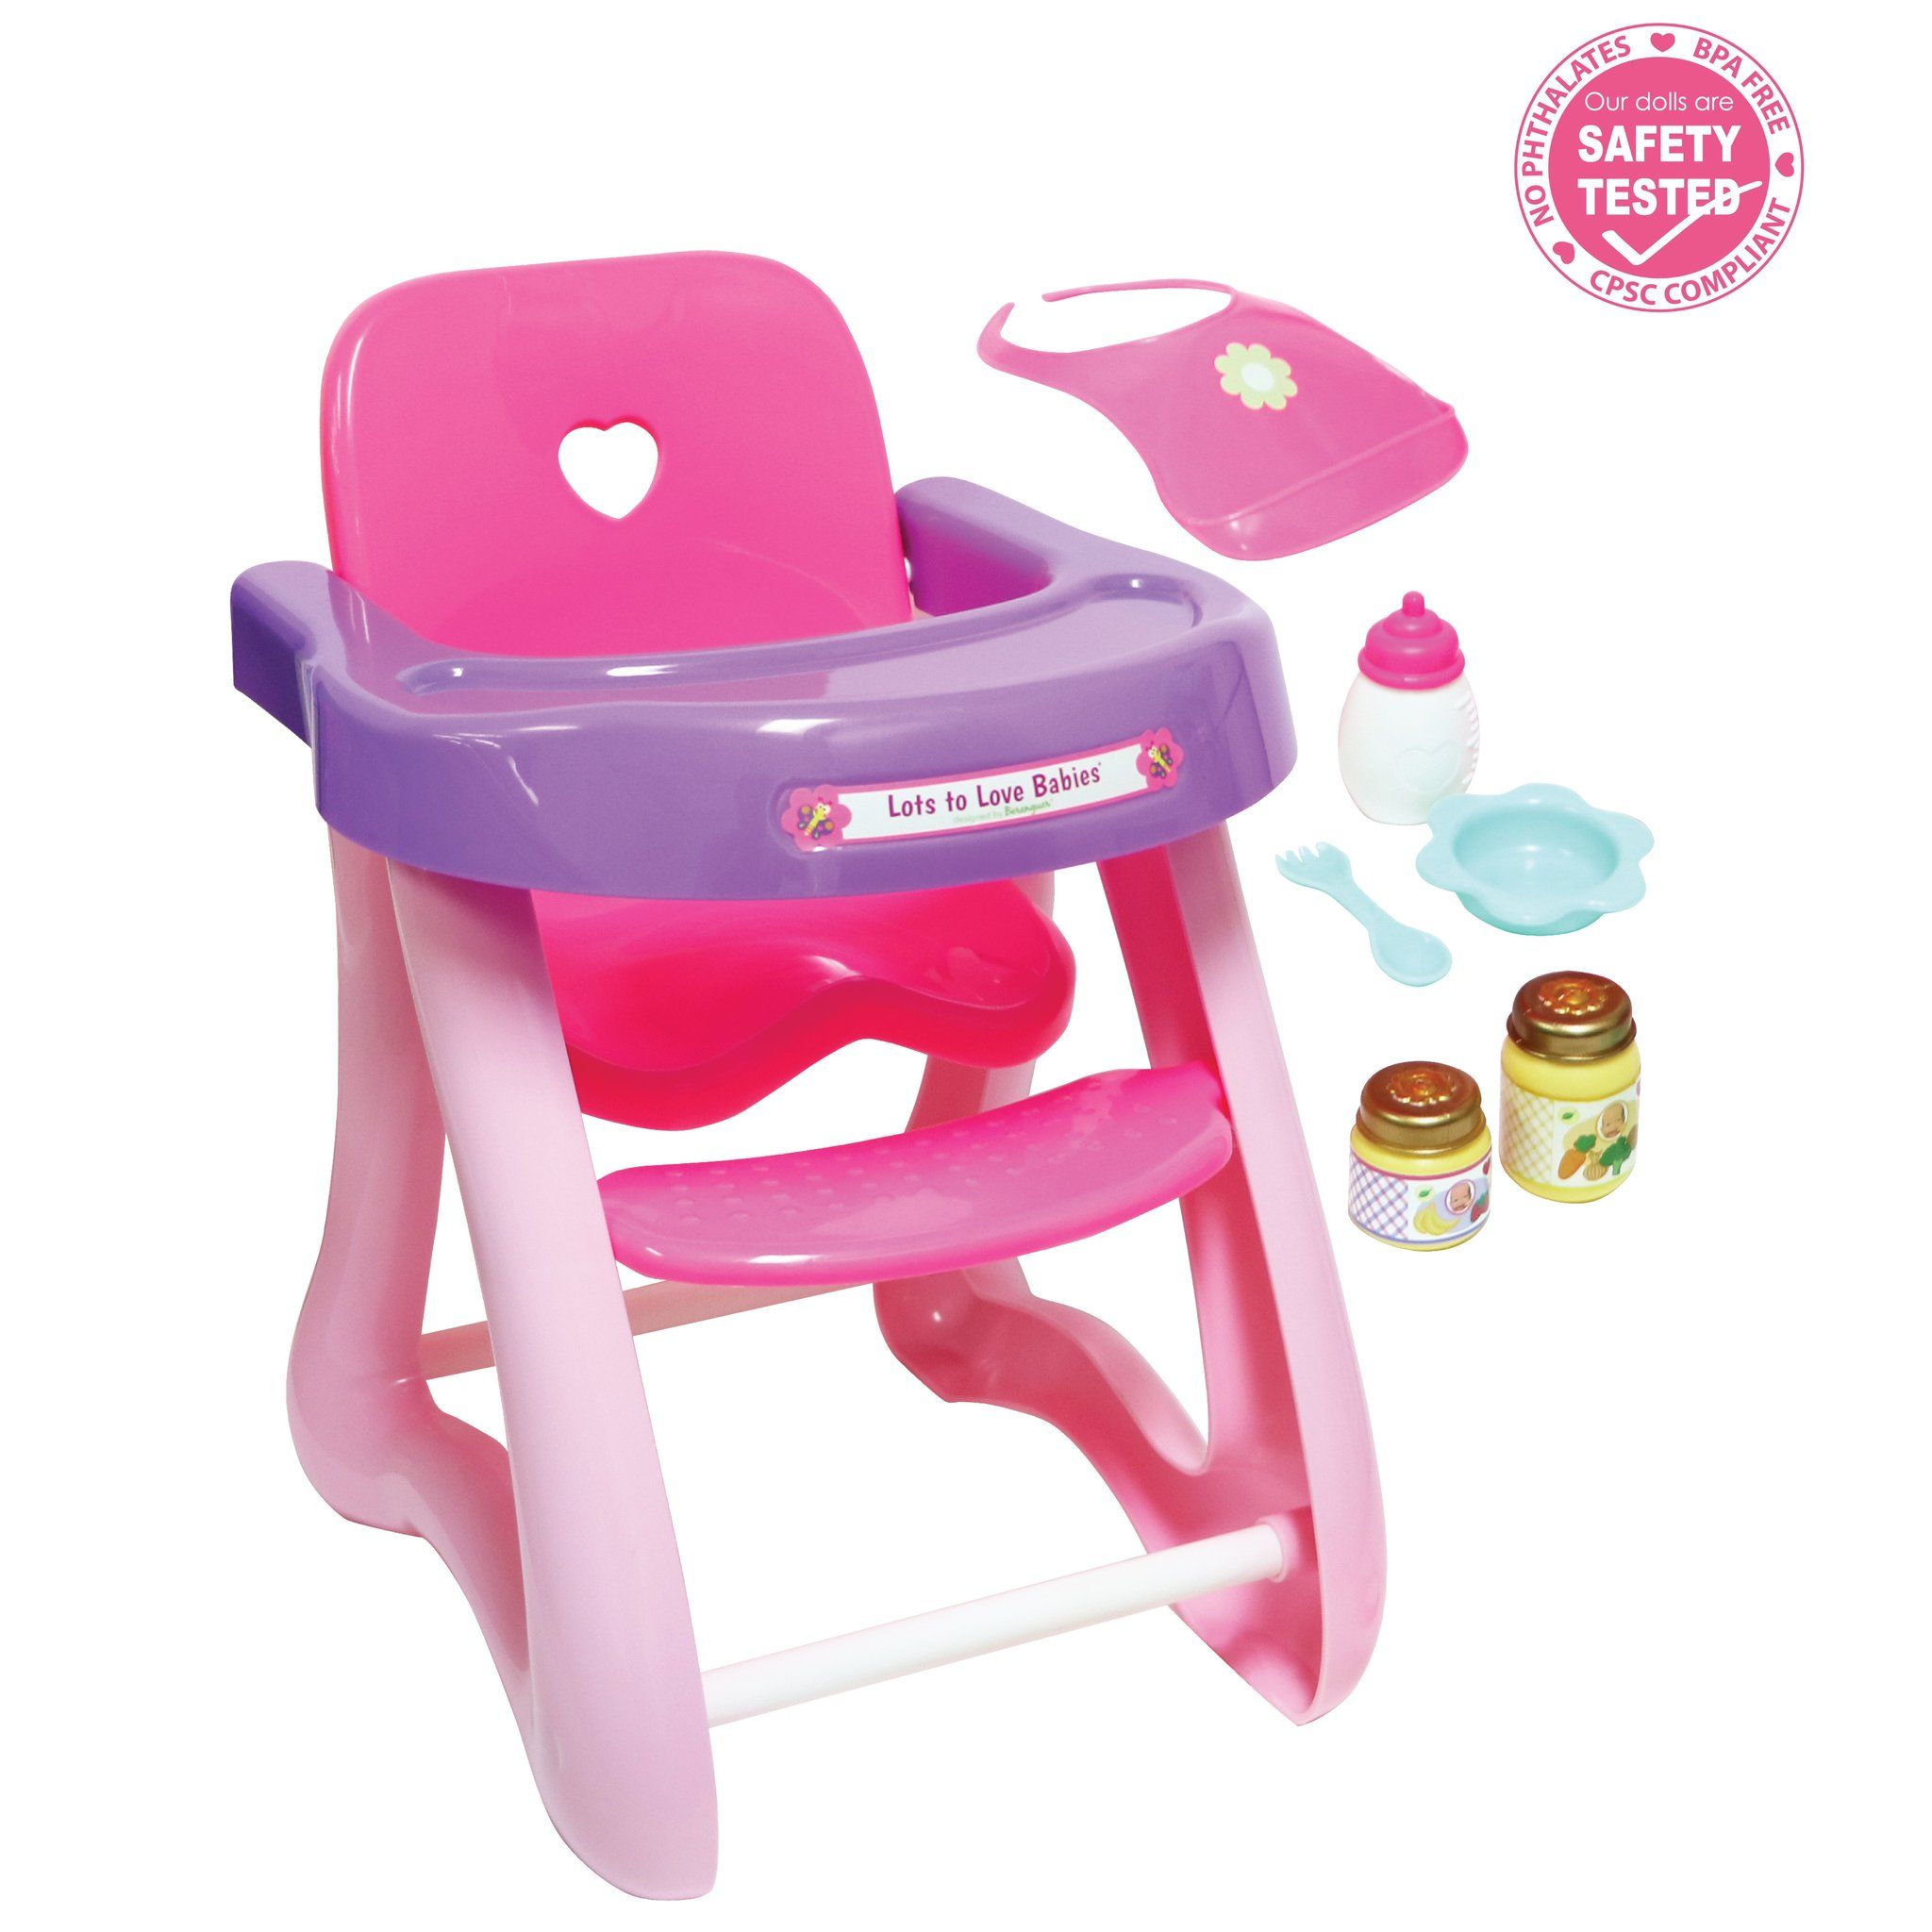 For Keeps Highchair Accessory Gift Set Fits Dolls Up To 16 Dolls Ages 2 In 2020 Little Girl Toys Baby Doll Nursery Baby Alive Dolls